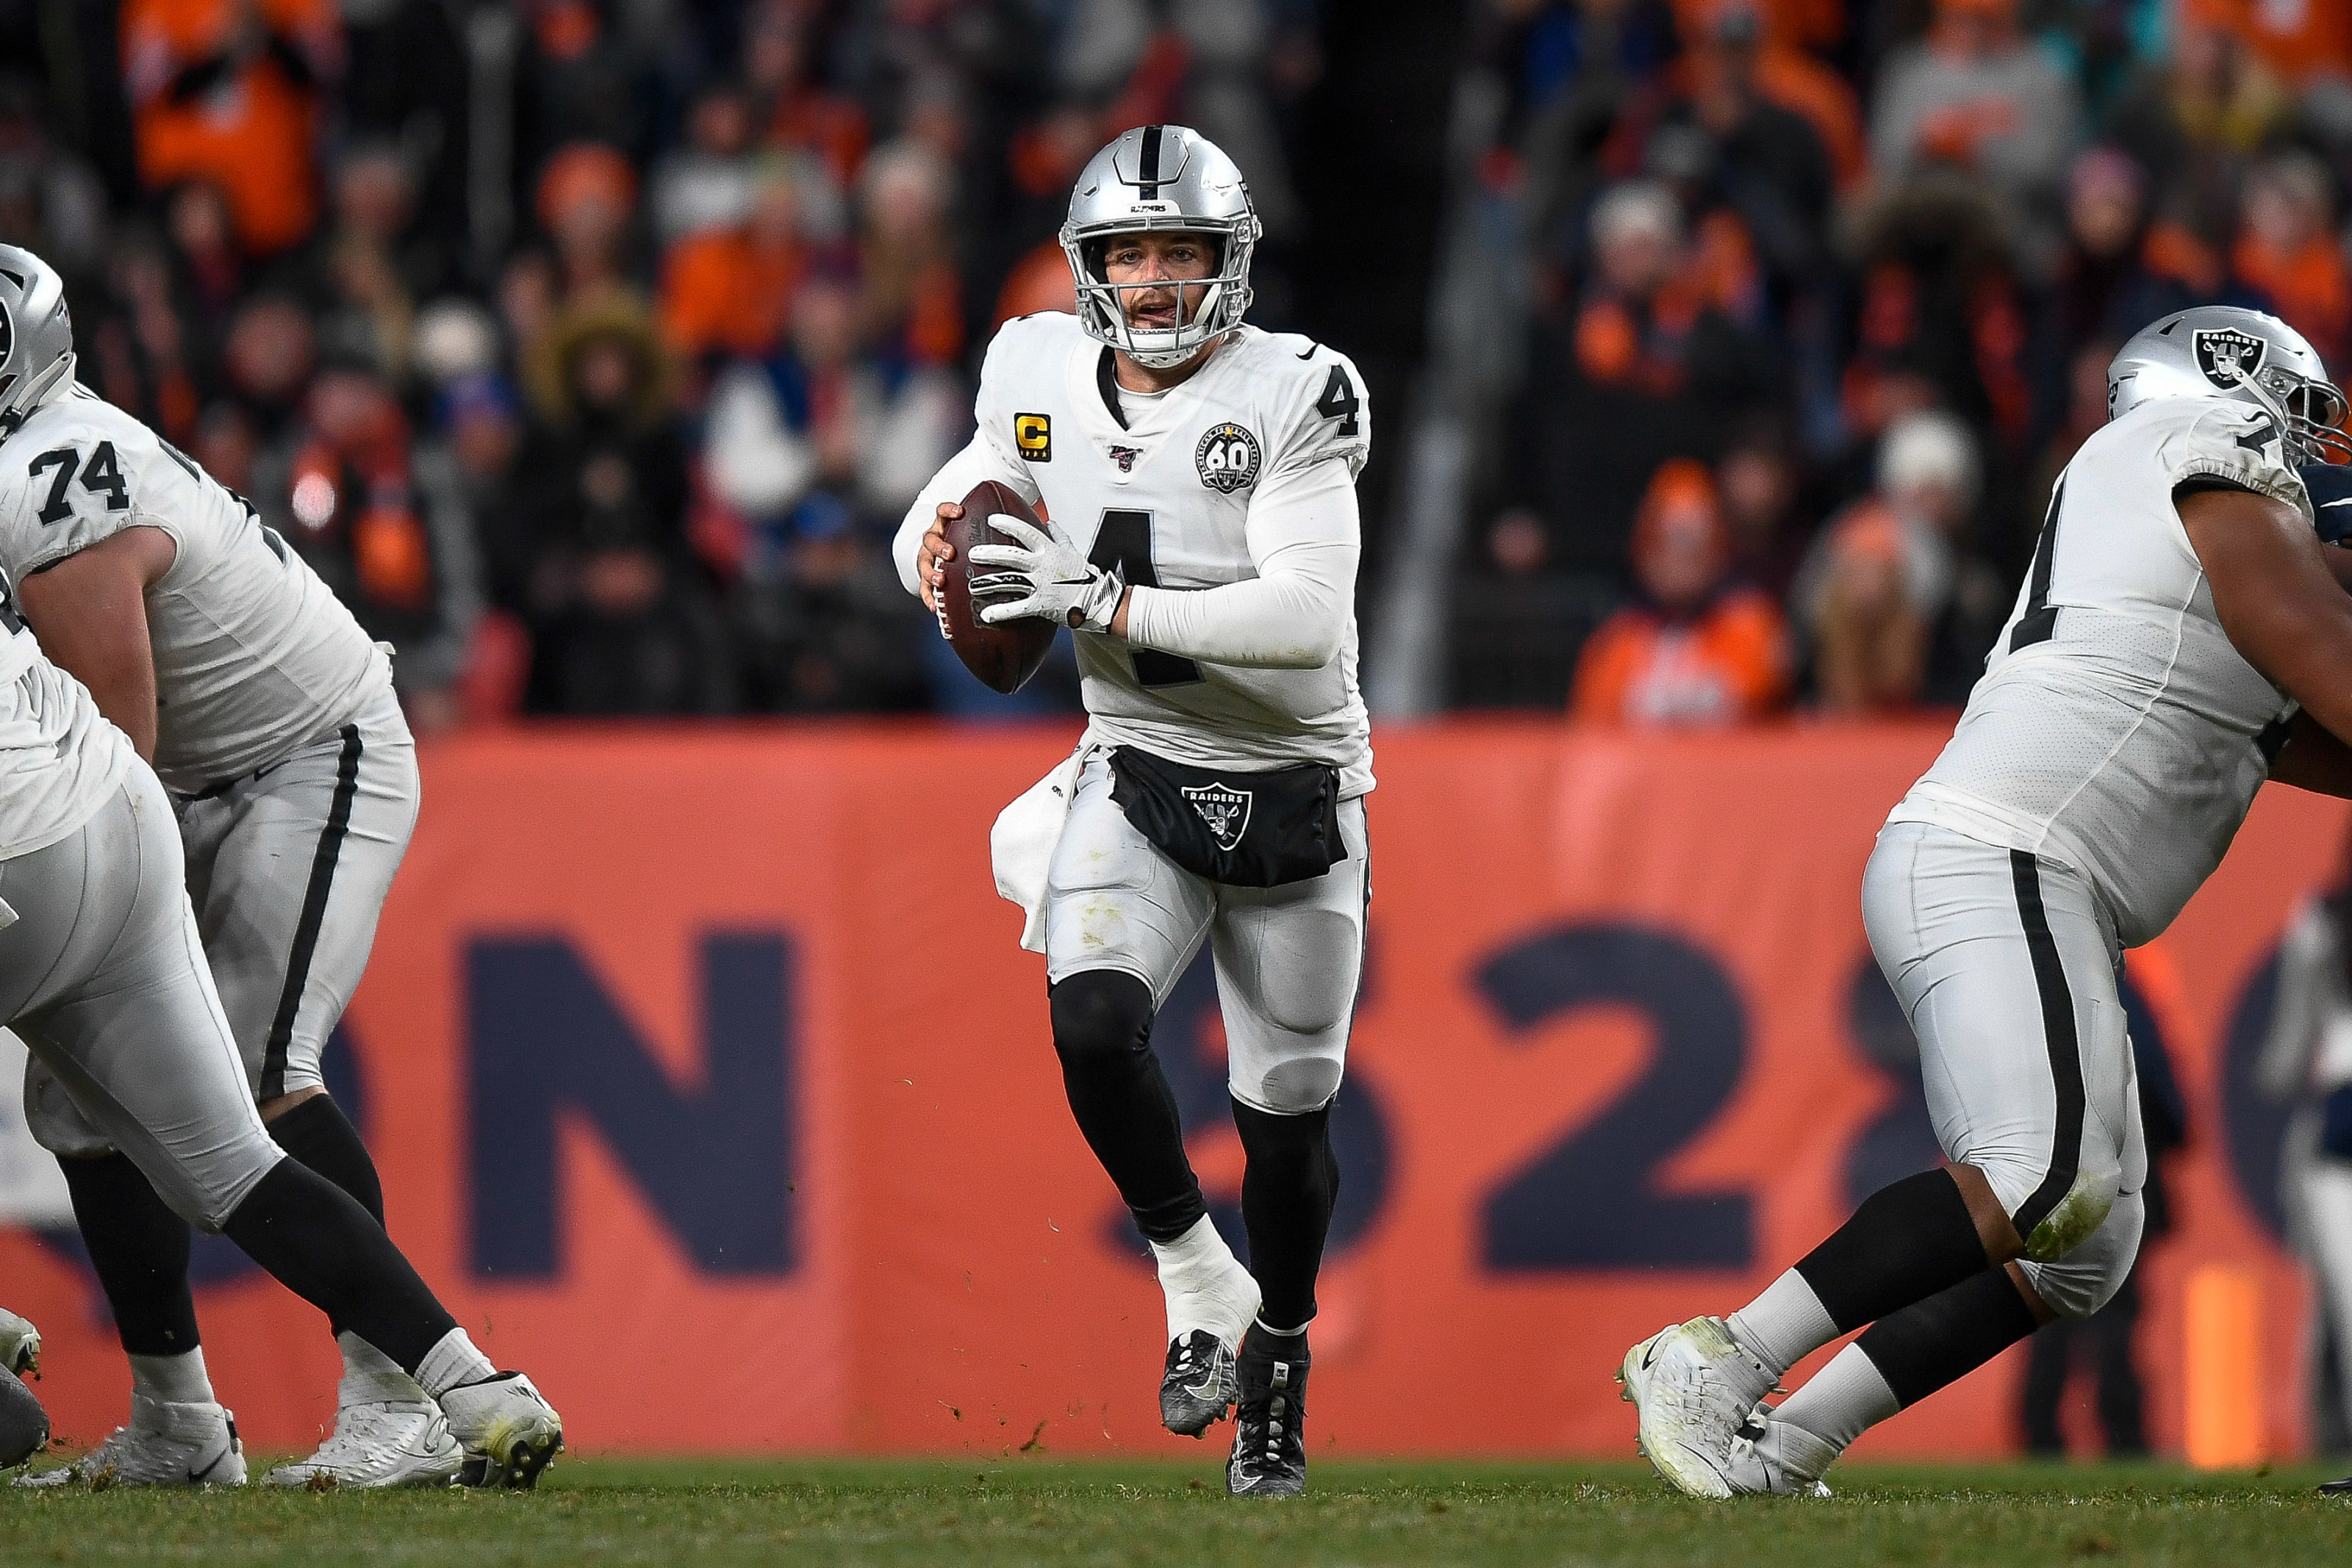 Raiders Rumors: Teams to inquire about Derek Carr at NFL Combine